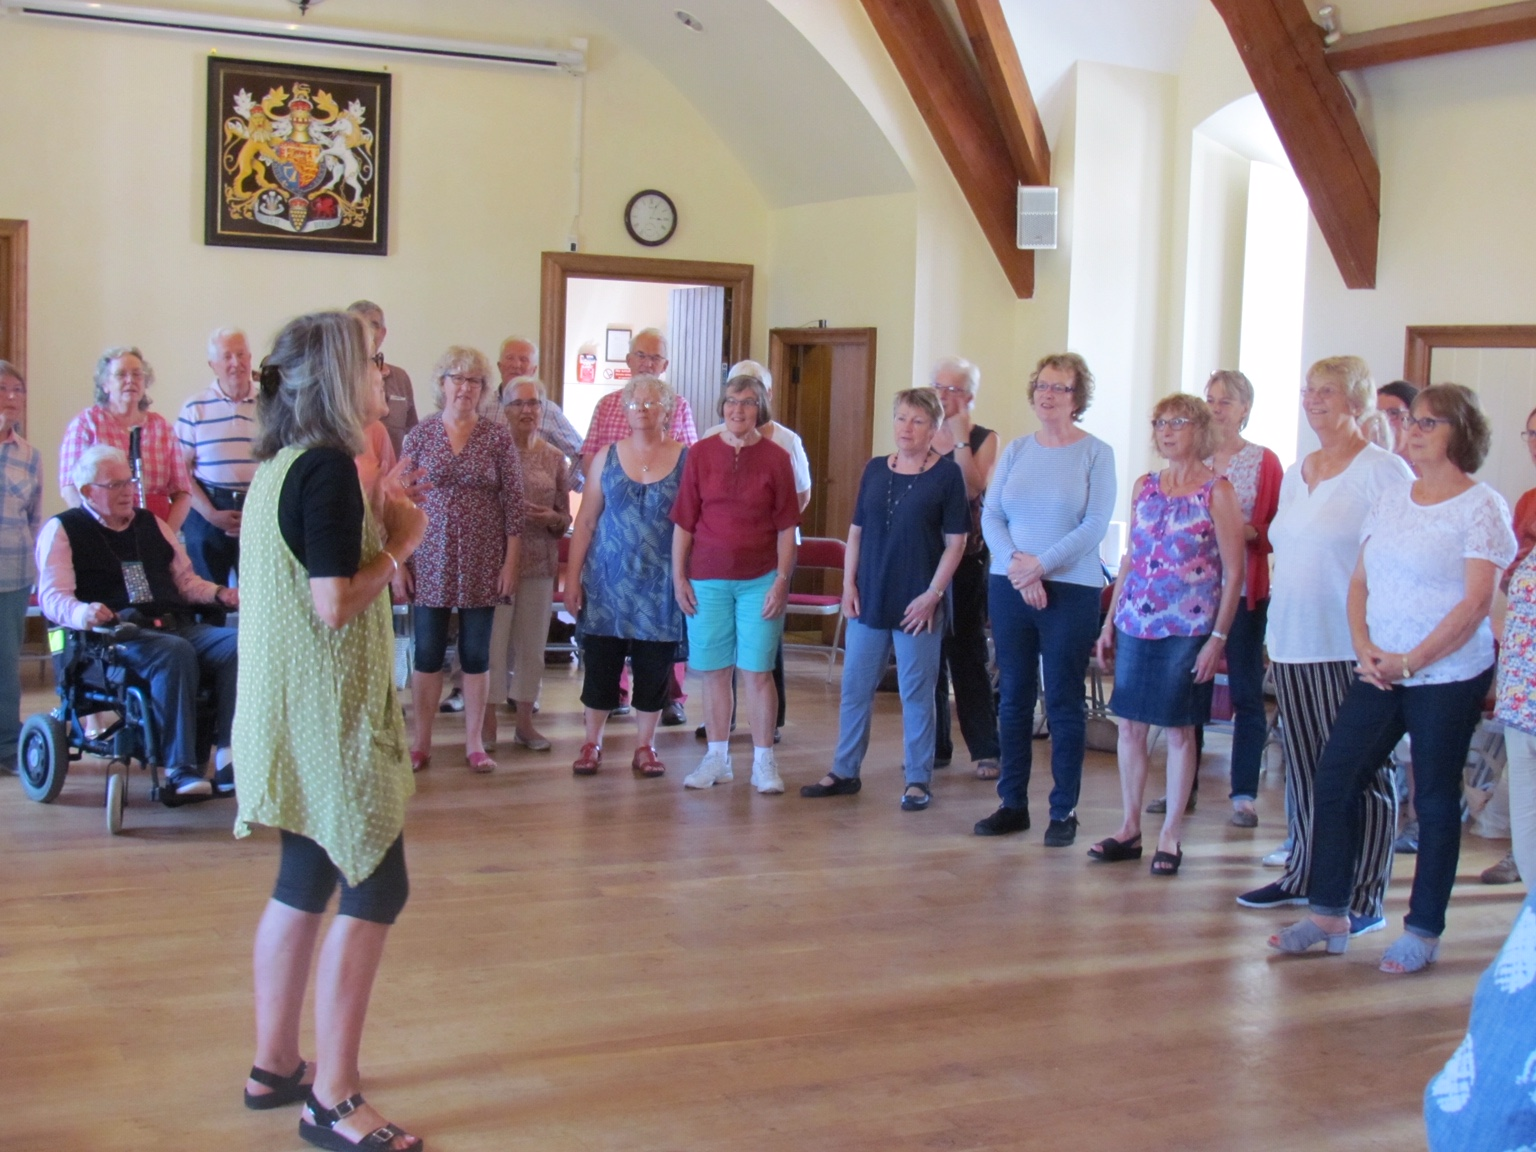 Summer singing workshop at the Brownsword Hall in Poundbury, August